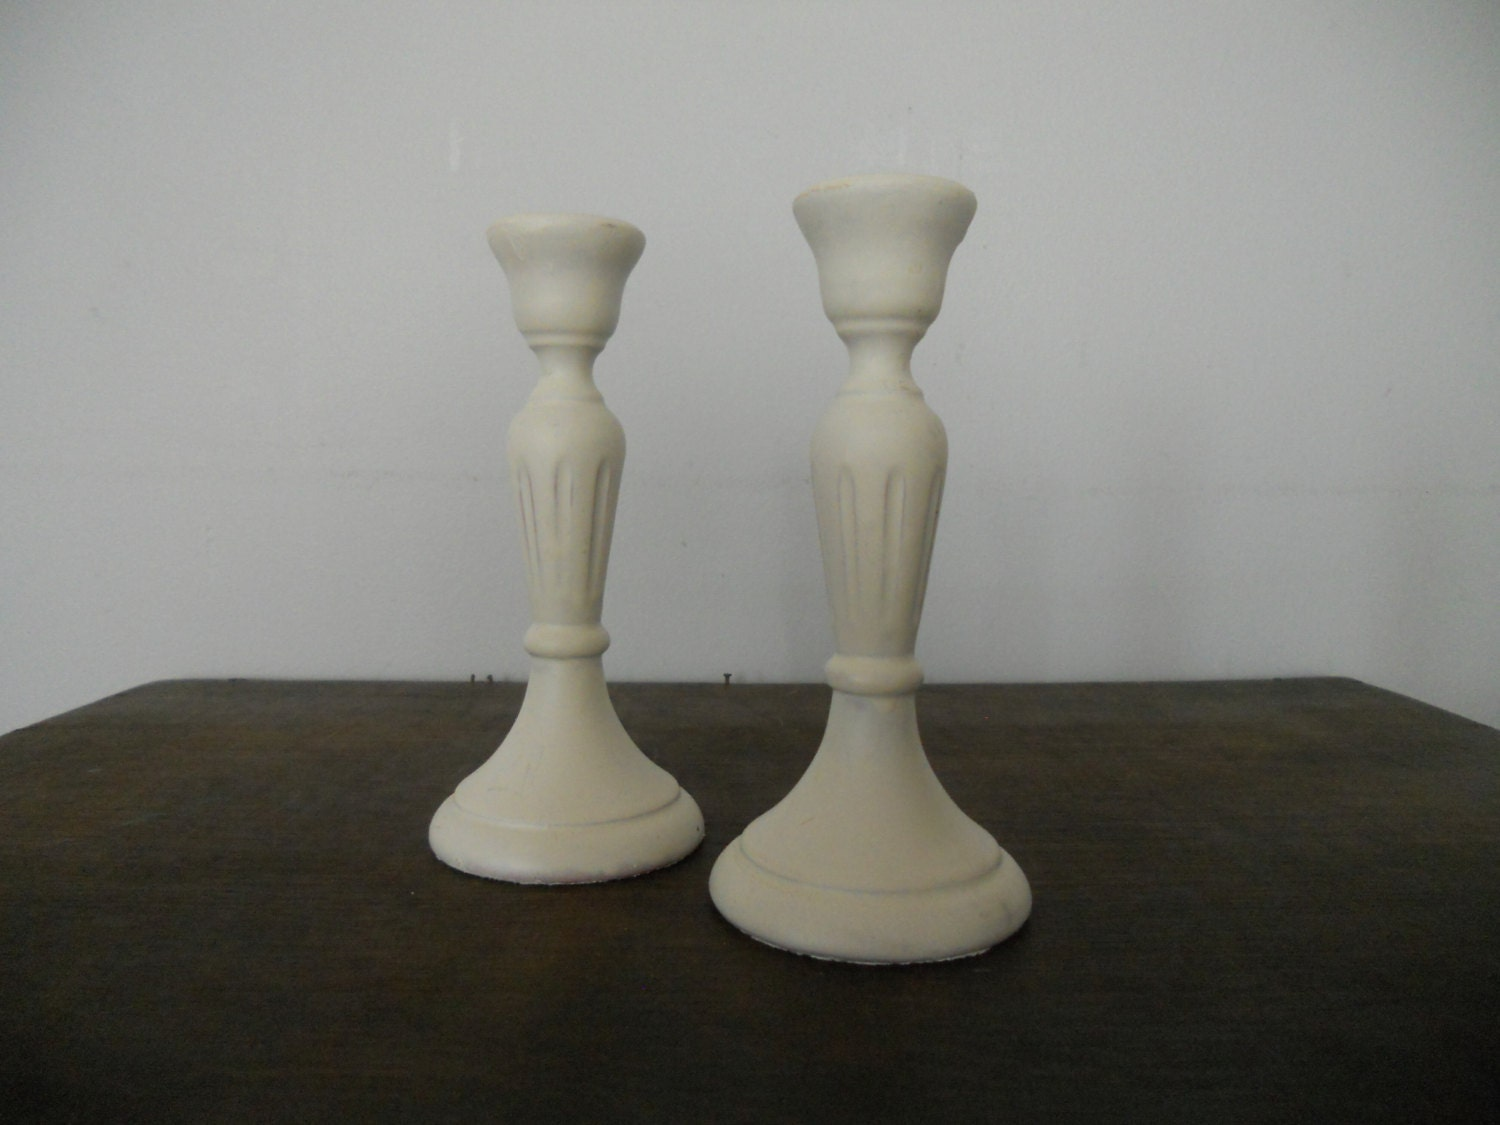 July sale 20%Swedish Vintage candle holders Set of 2 White wooden candle holder Swedish folk art Shabby home decor - TasteVintage